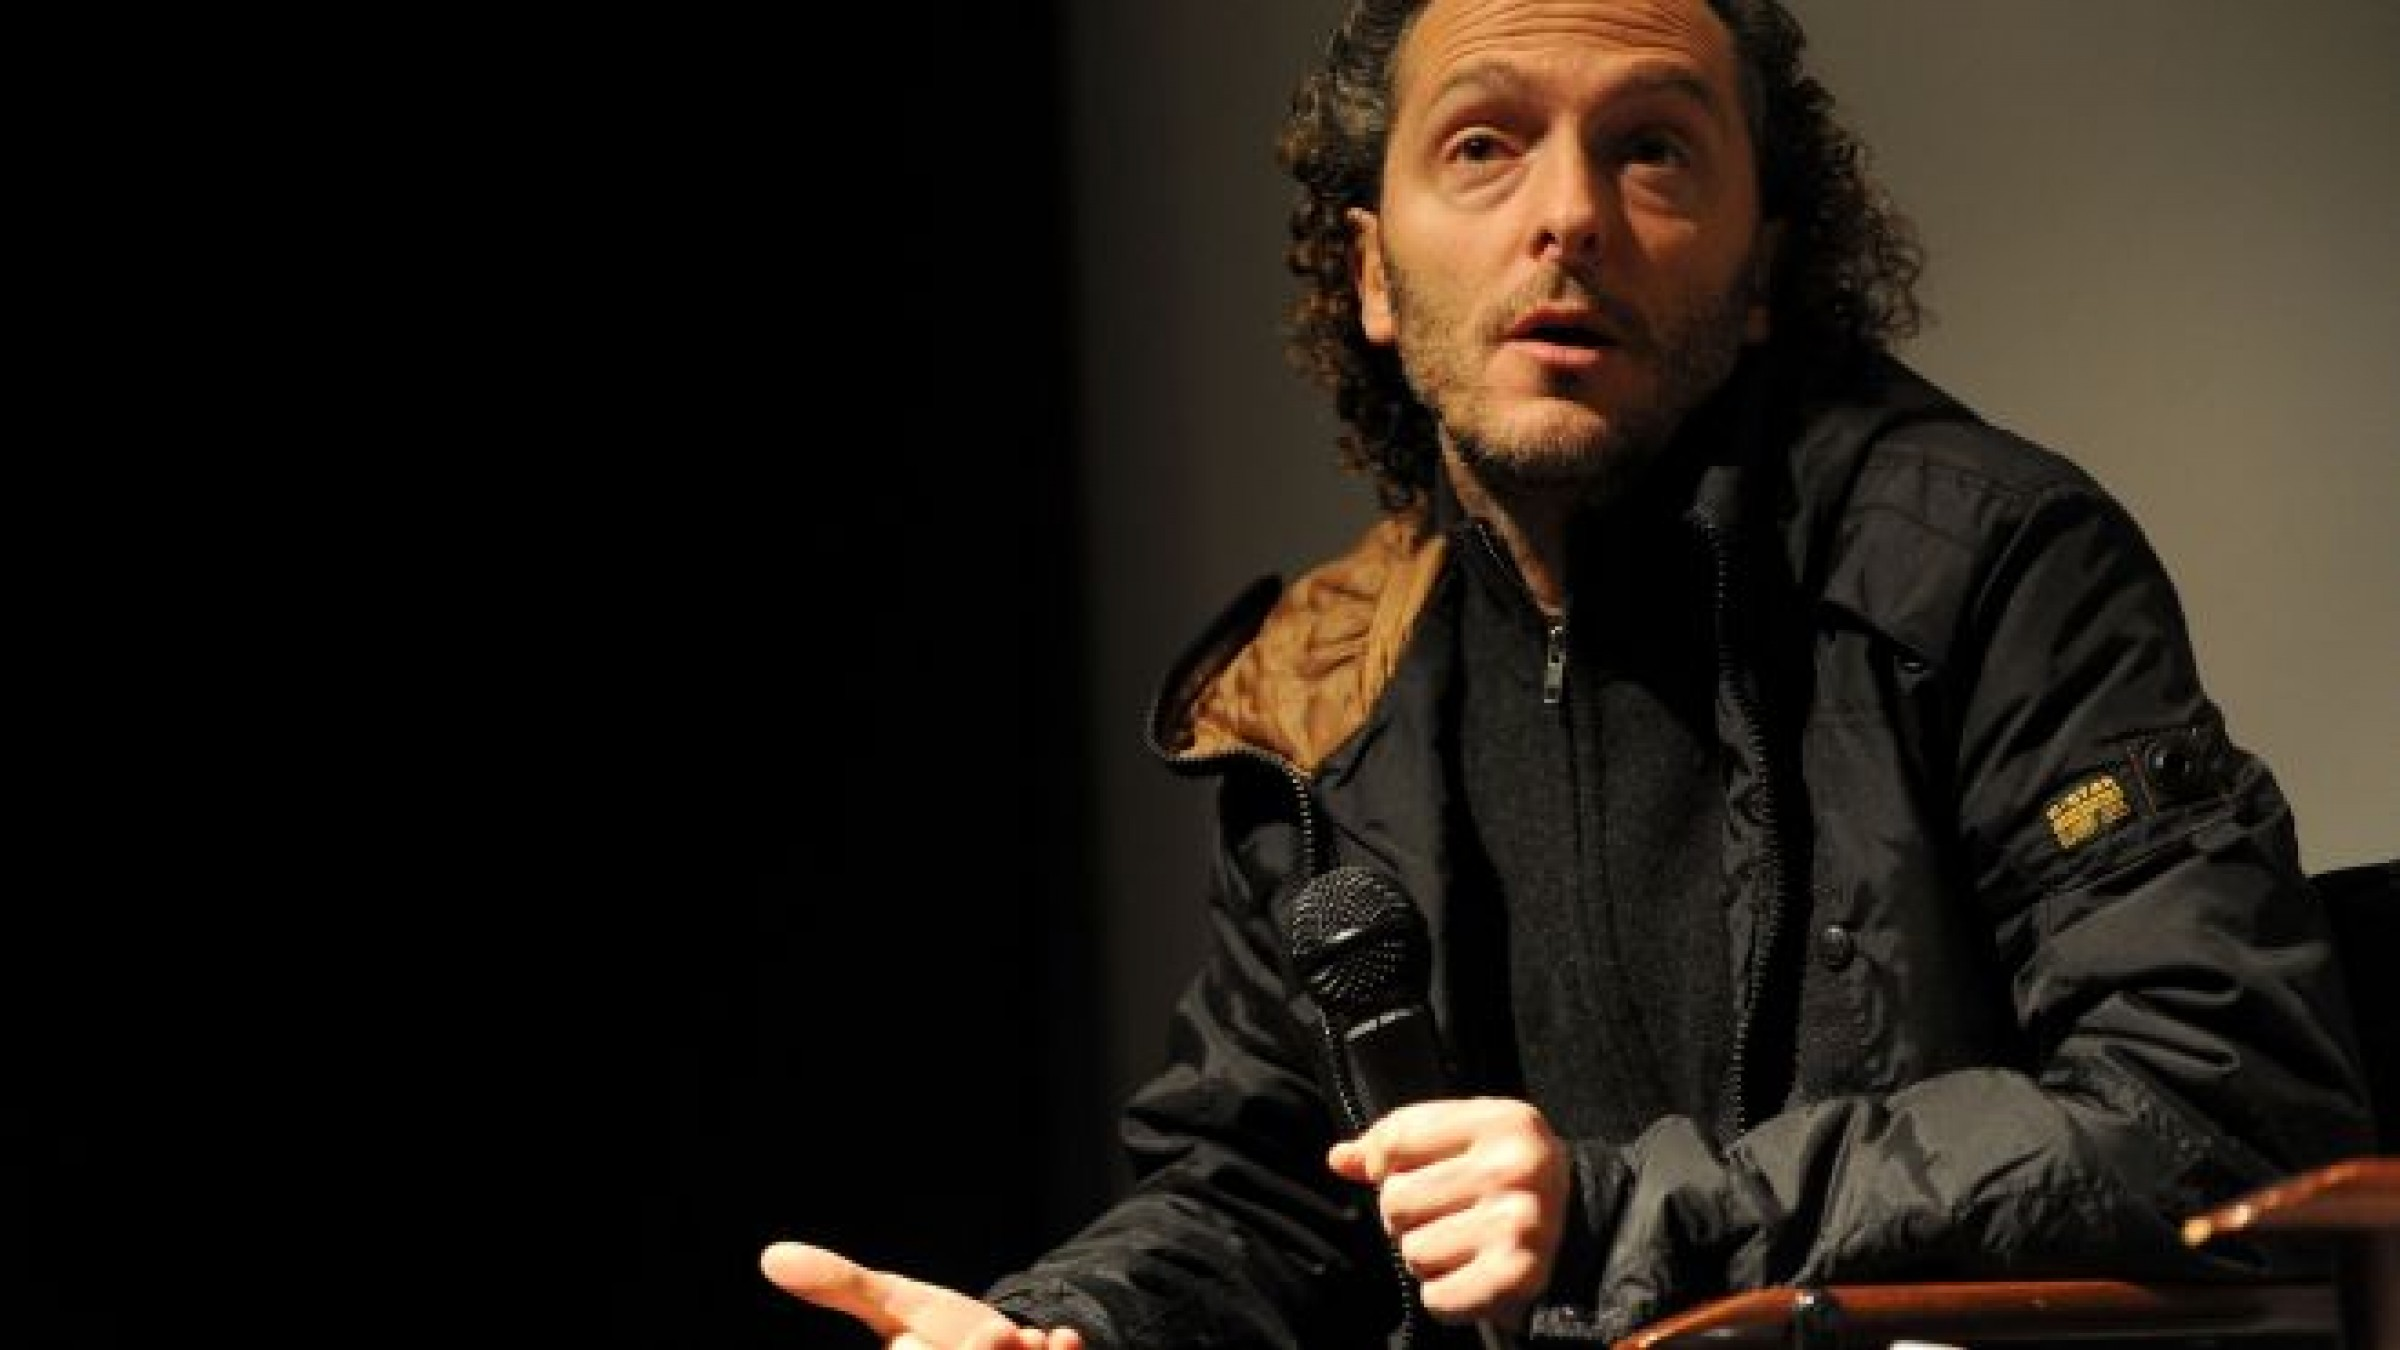 emmanuel lubezki biography